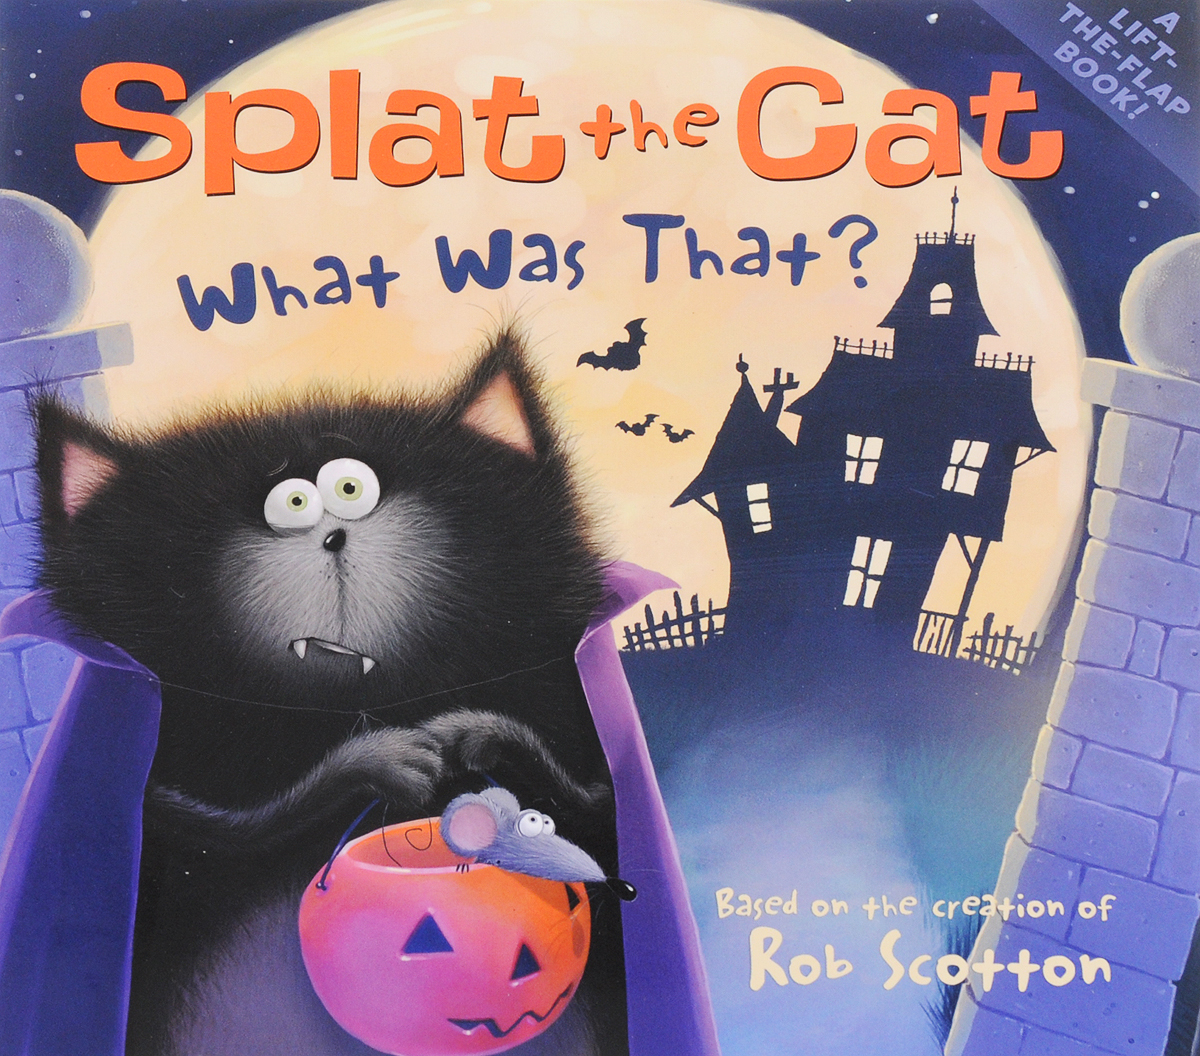 Splat the Cat: What Was That? what pet should i get